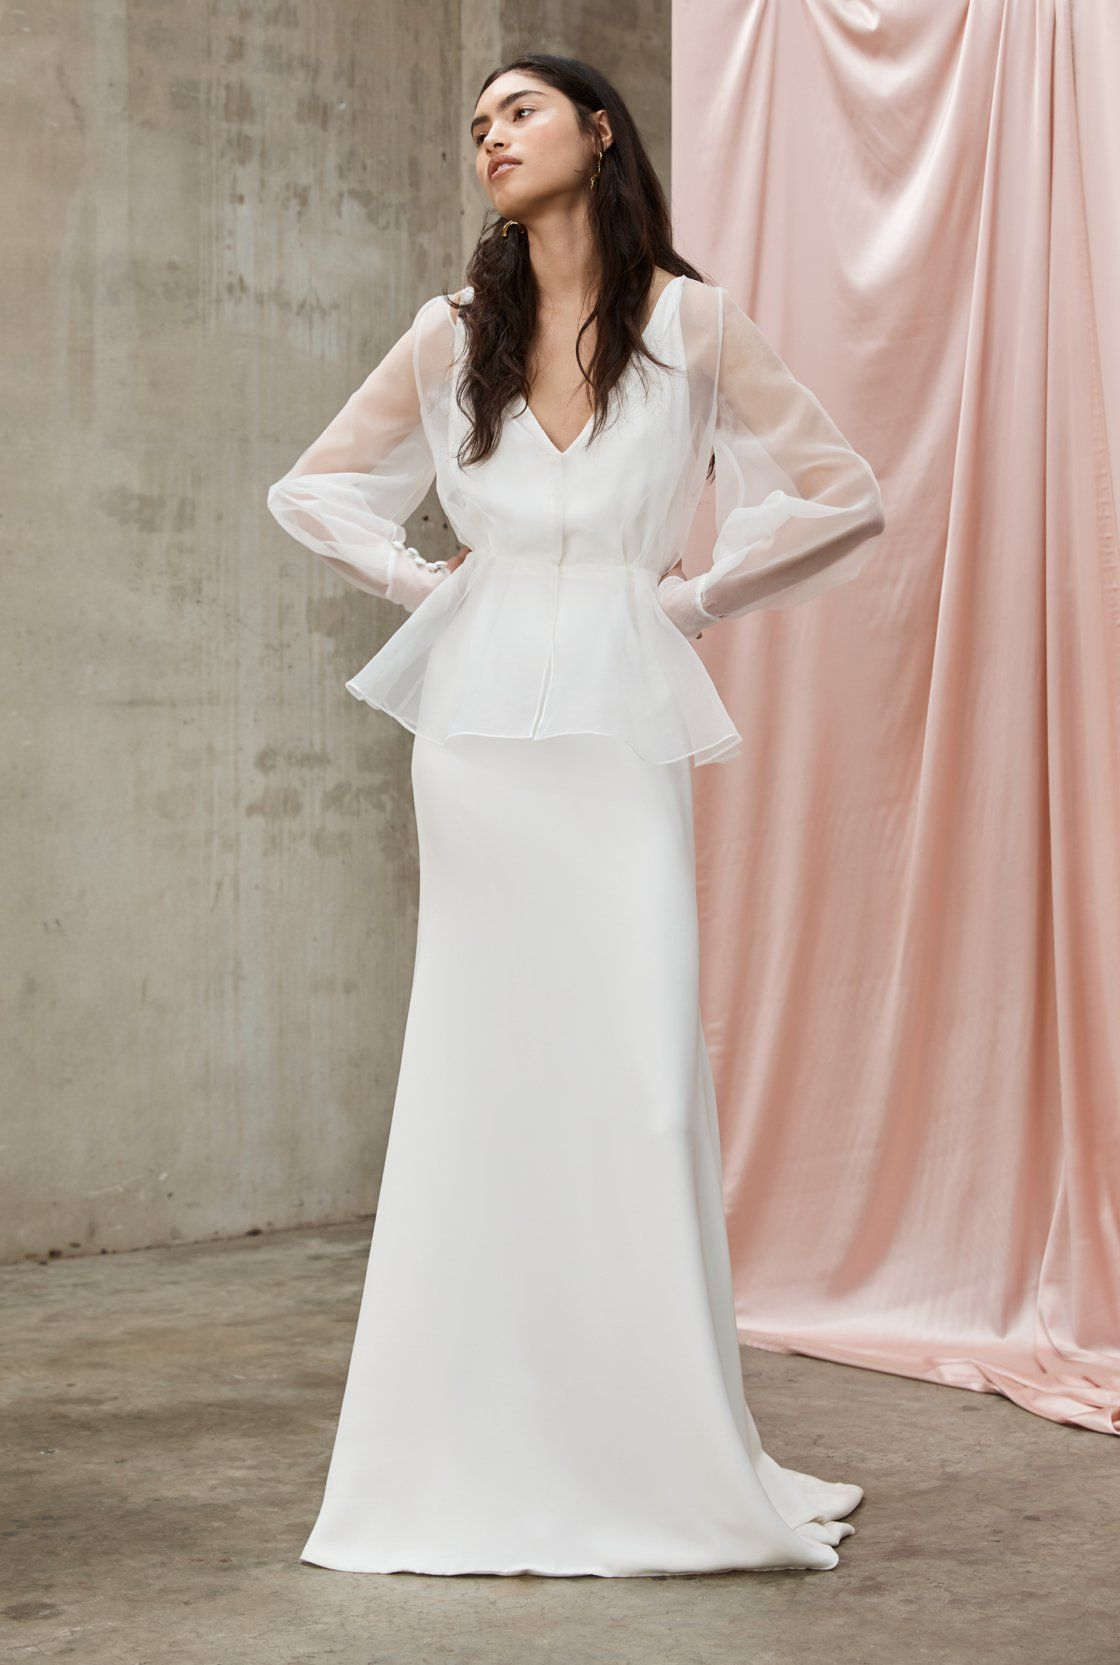 PREA JAMES BRIDAL 2020 HARMONY II Hello May เจ้าสาว